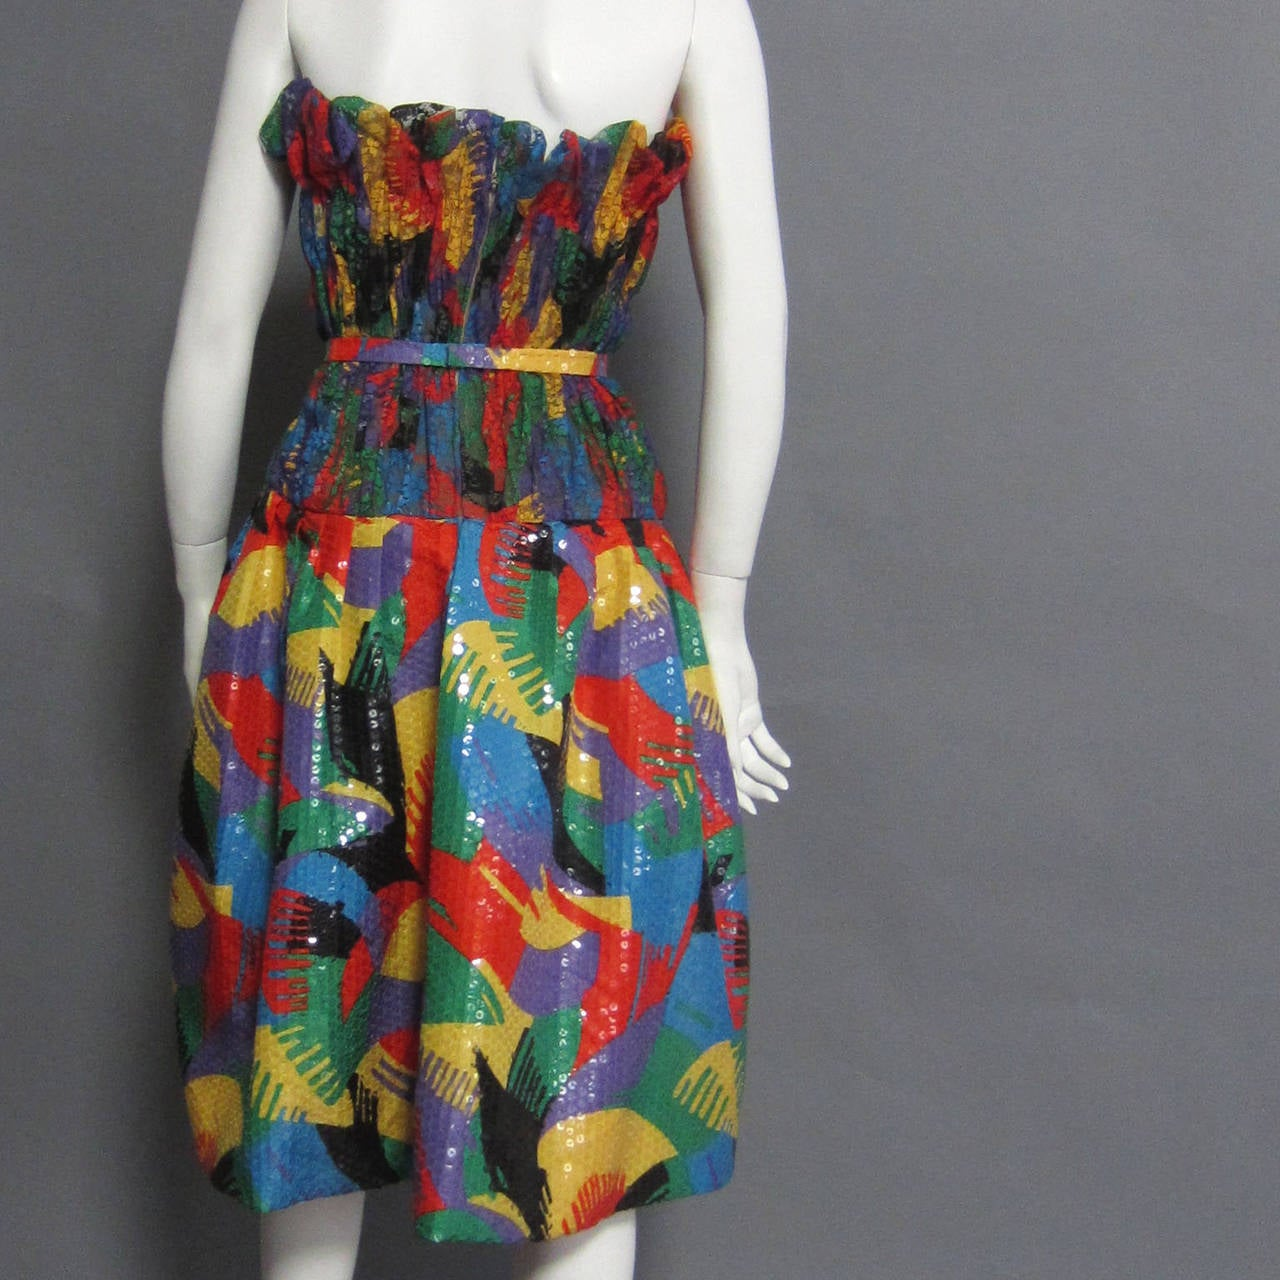 SCAASI Multi Color Lace and Sequin Cocktail Dress In Excellent Condition For Sale In New York, NY